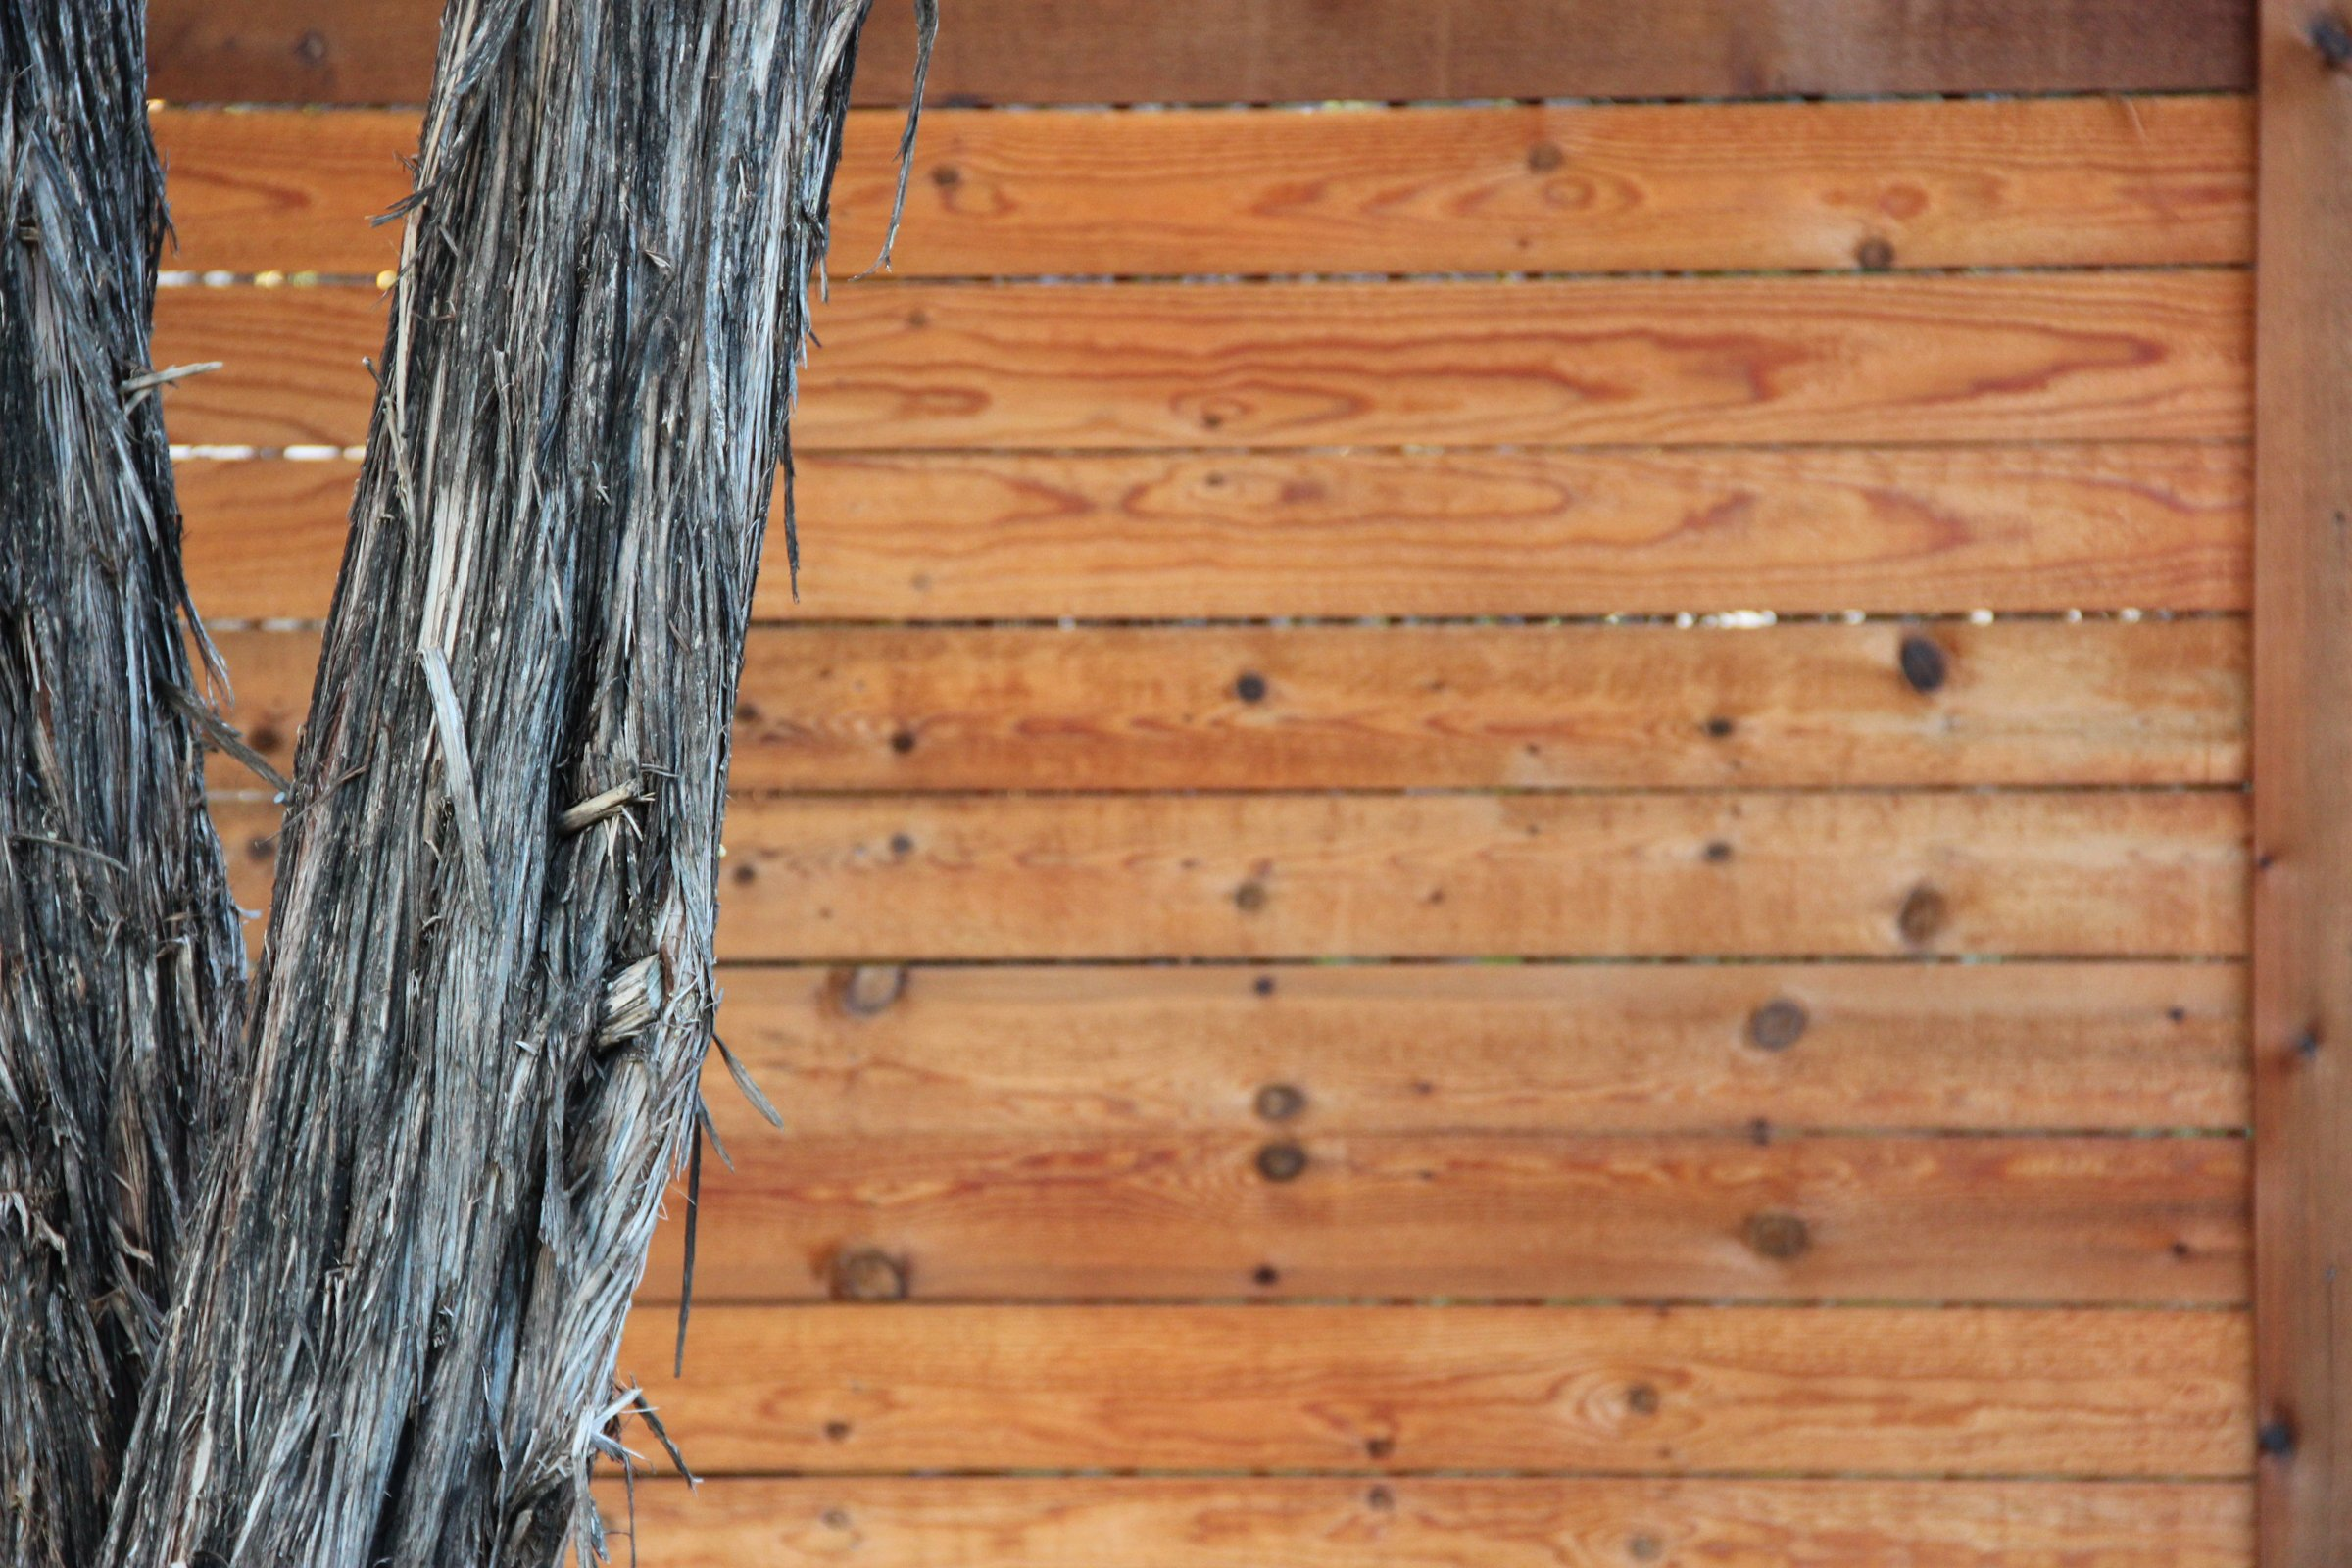 Free stock photo of tree trunk in front of wood board fence tree trunk in front of wood board fence baanklon Gallery